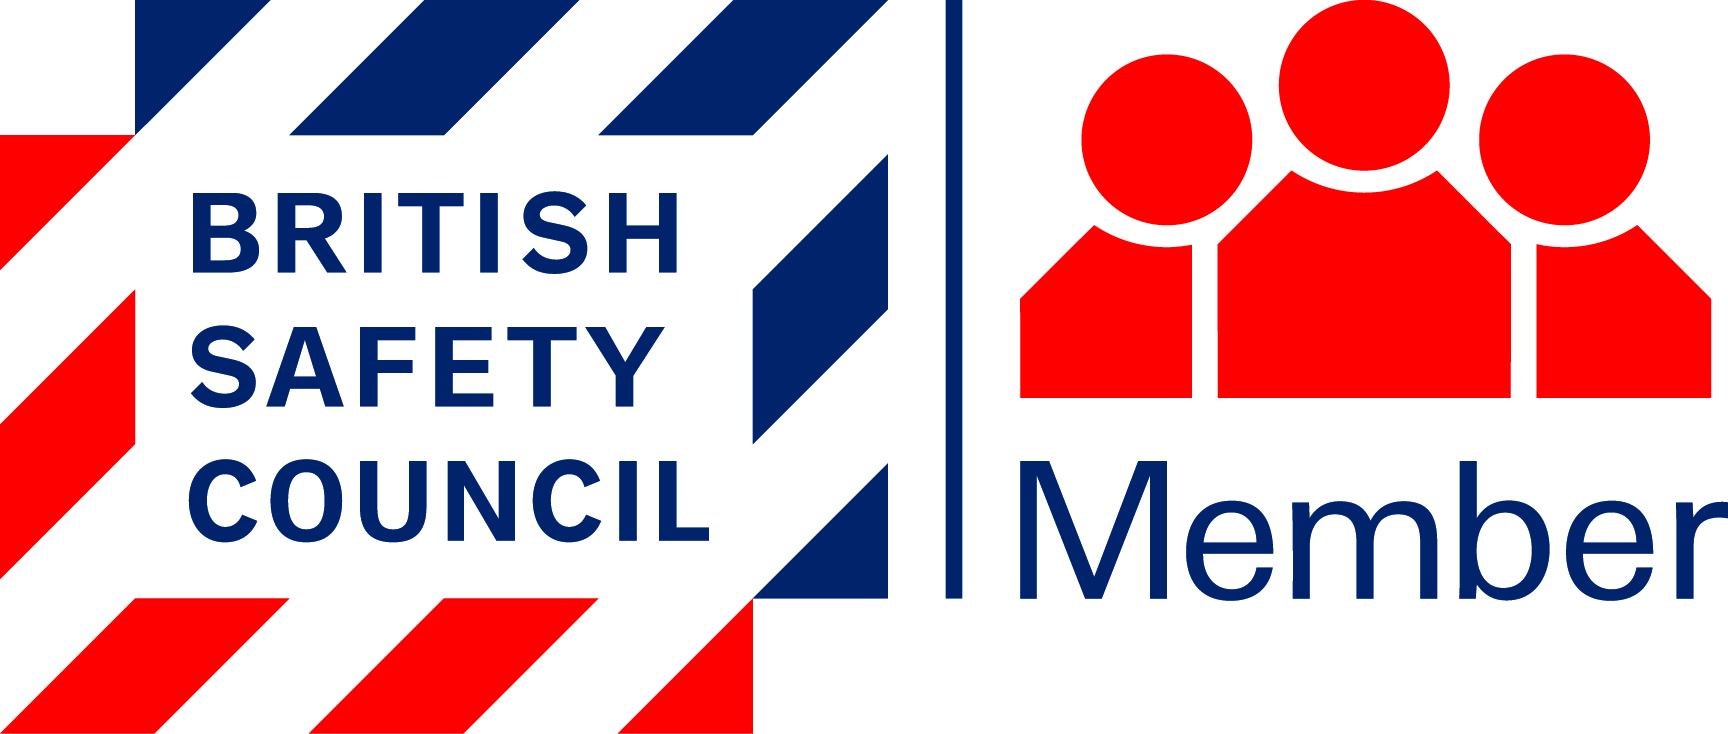 Member of the British Safety Council